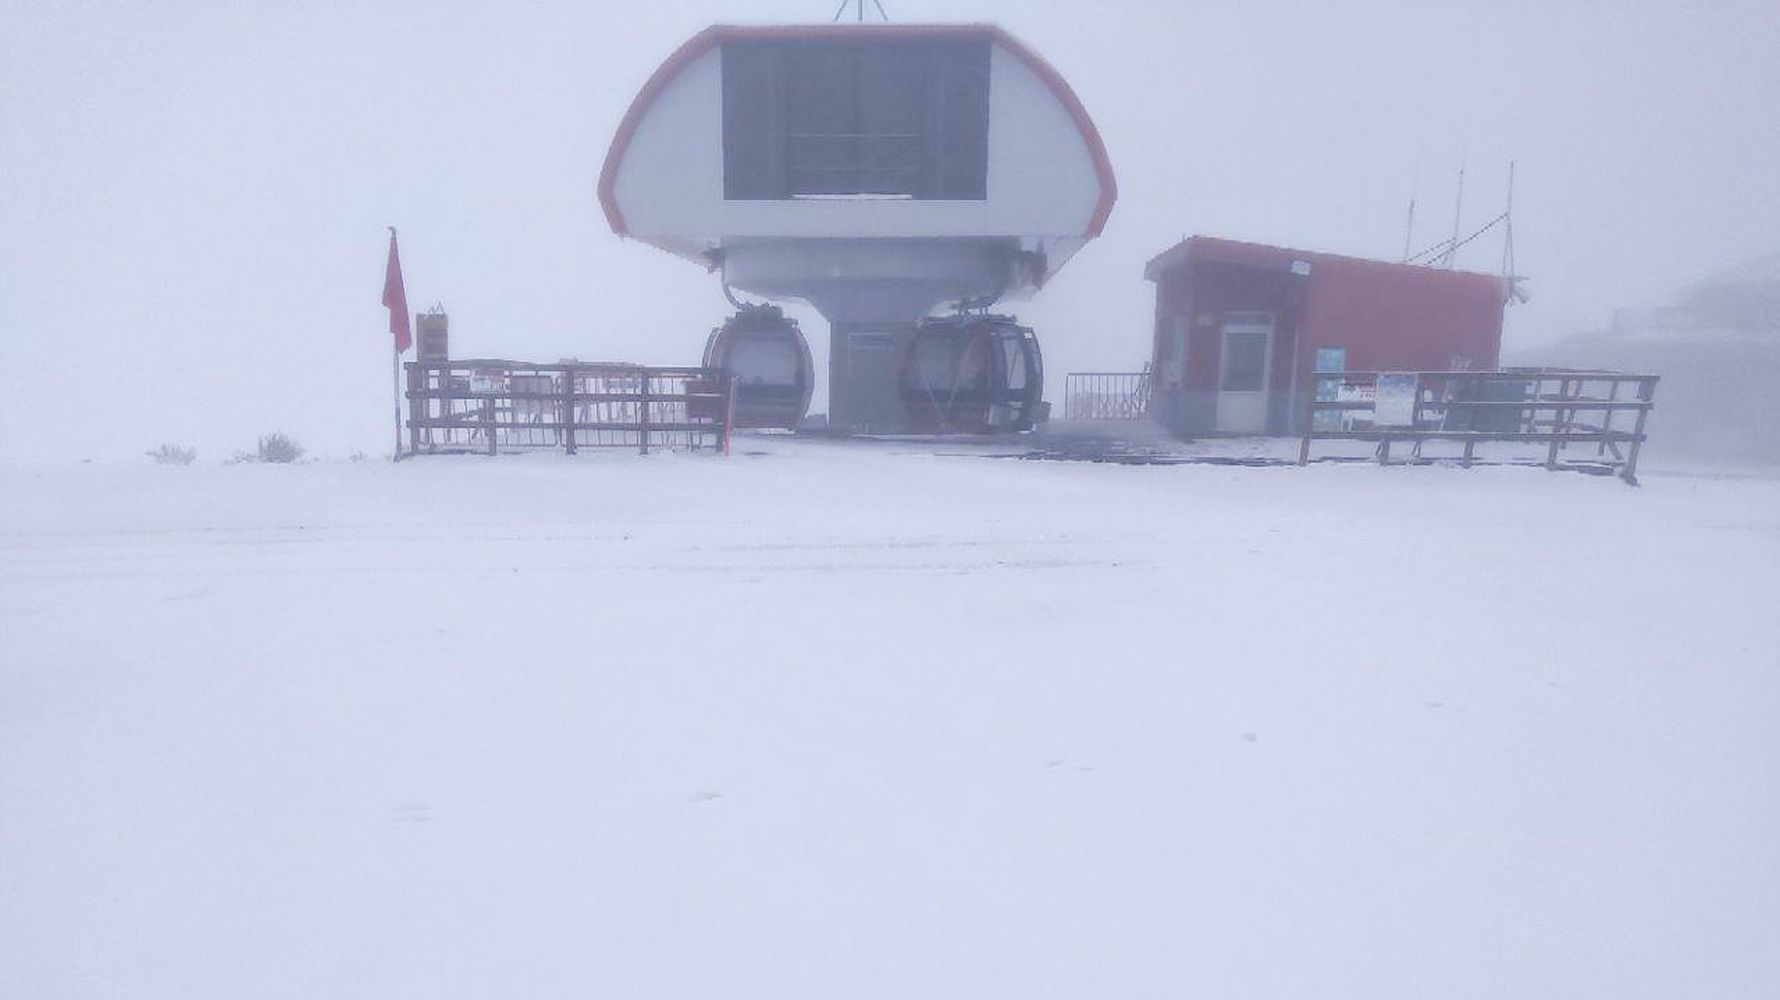 Mount Erciyes turned white after the falling snow